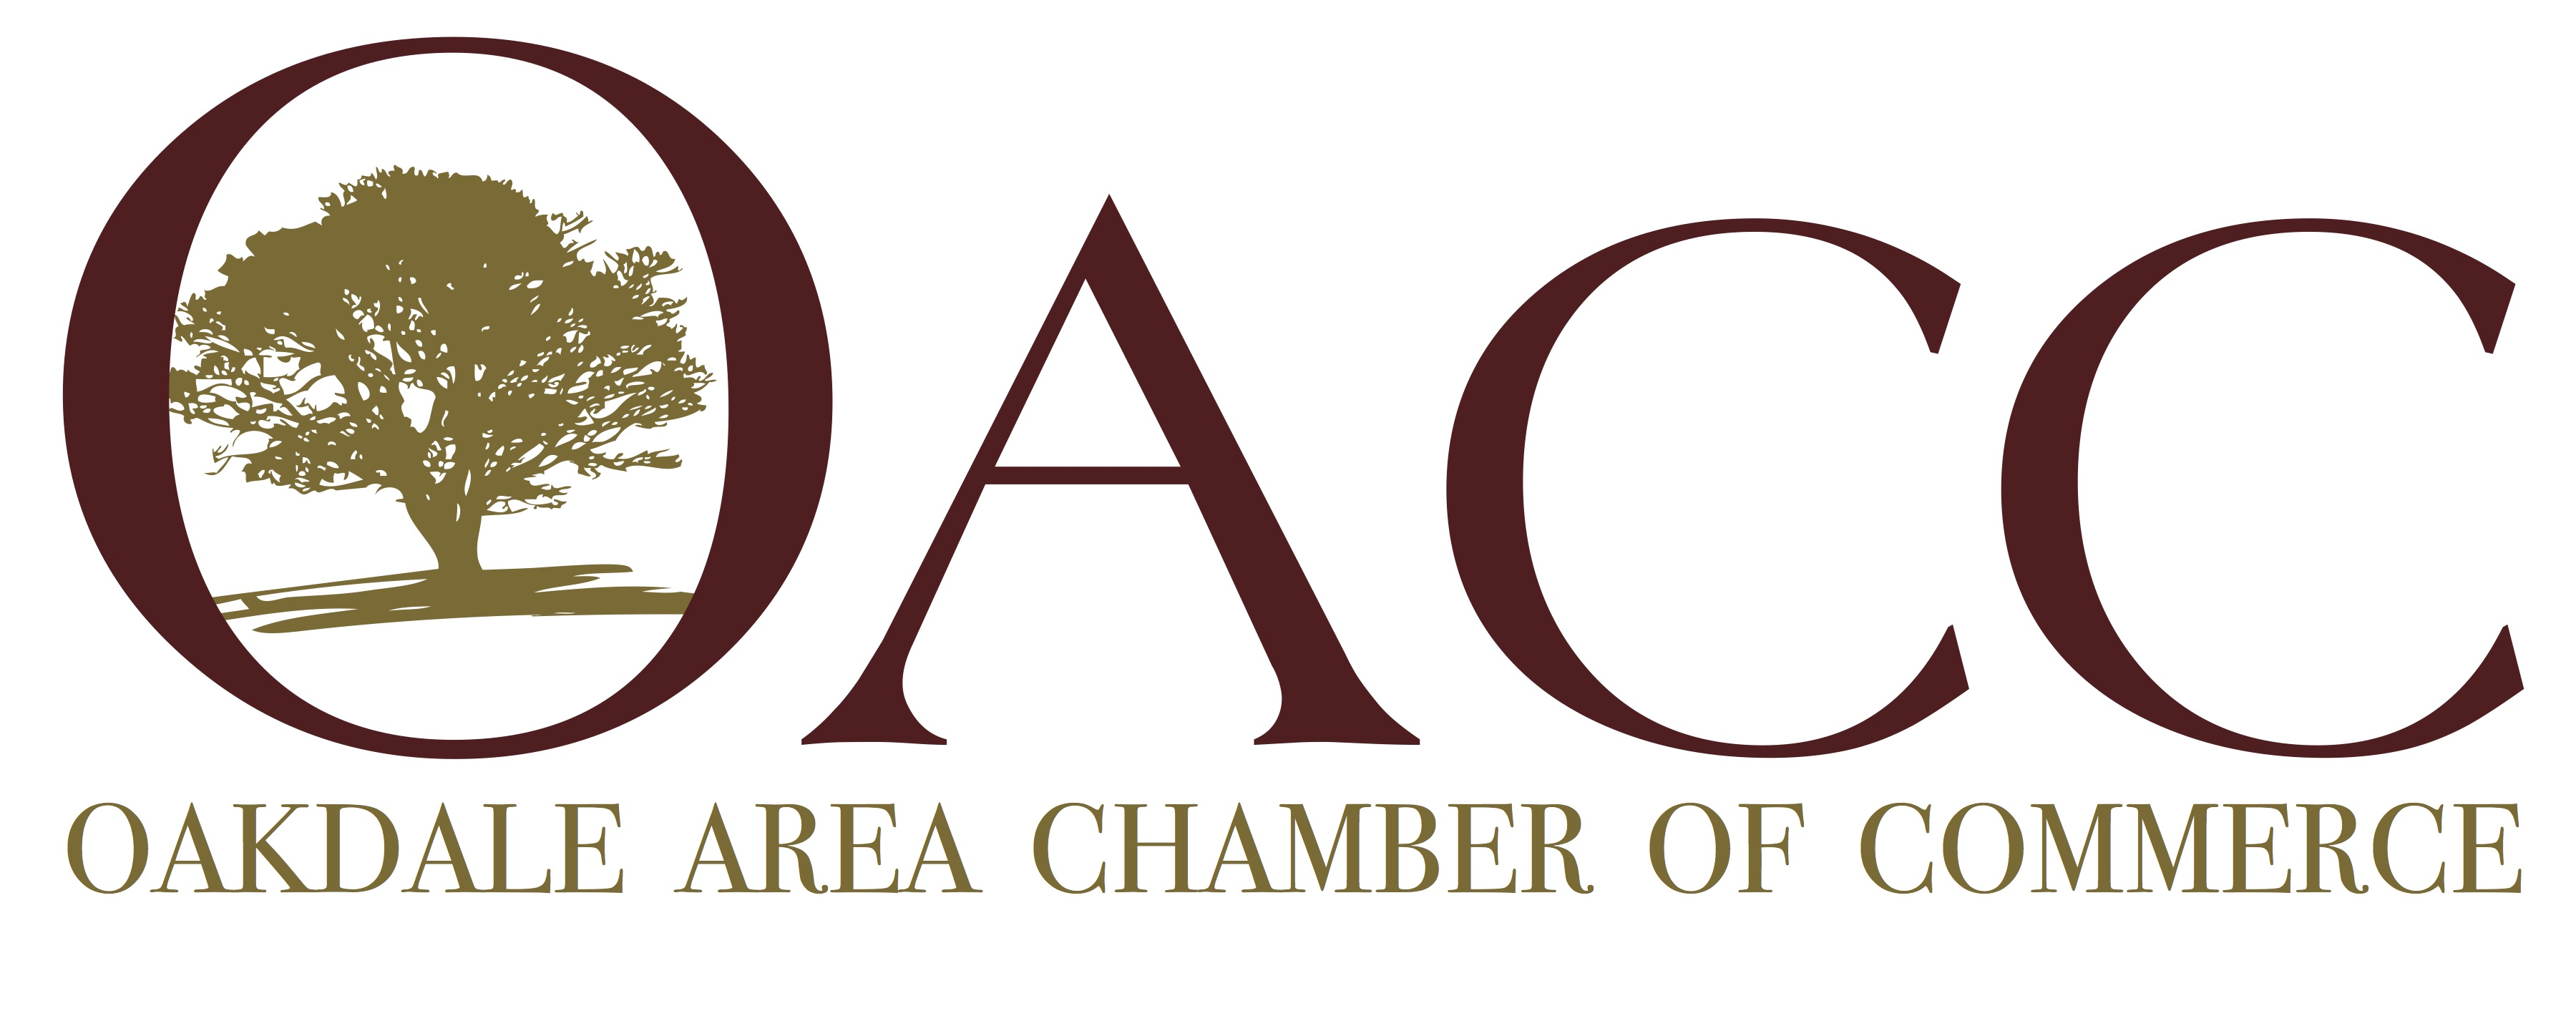 Oakdale Area Chamber of Commerce